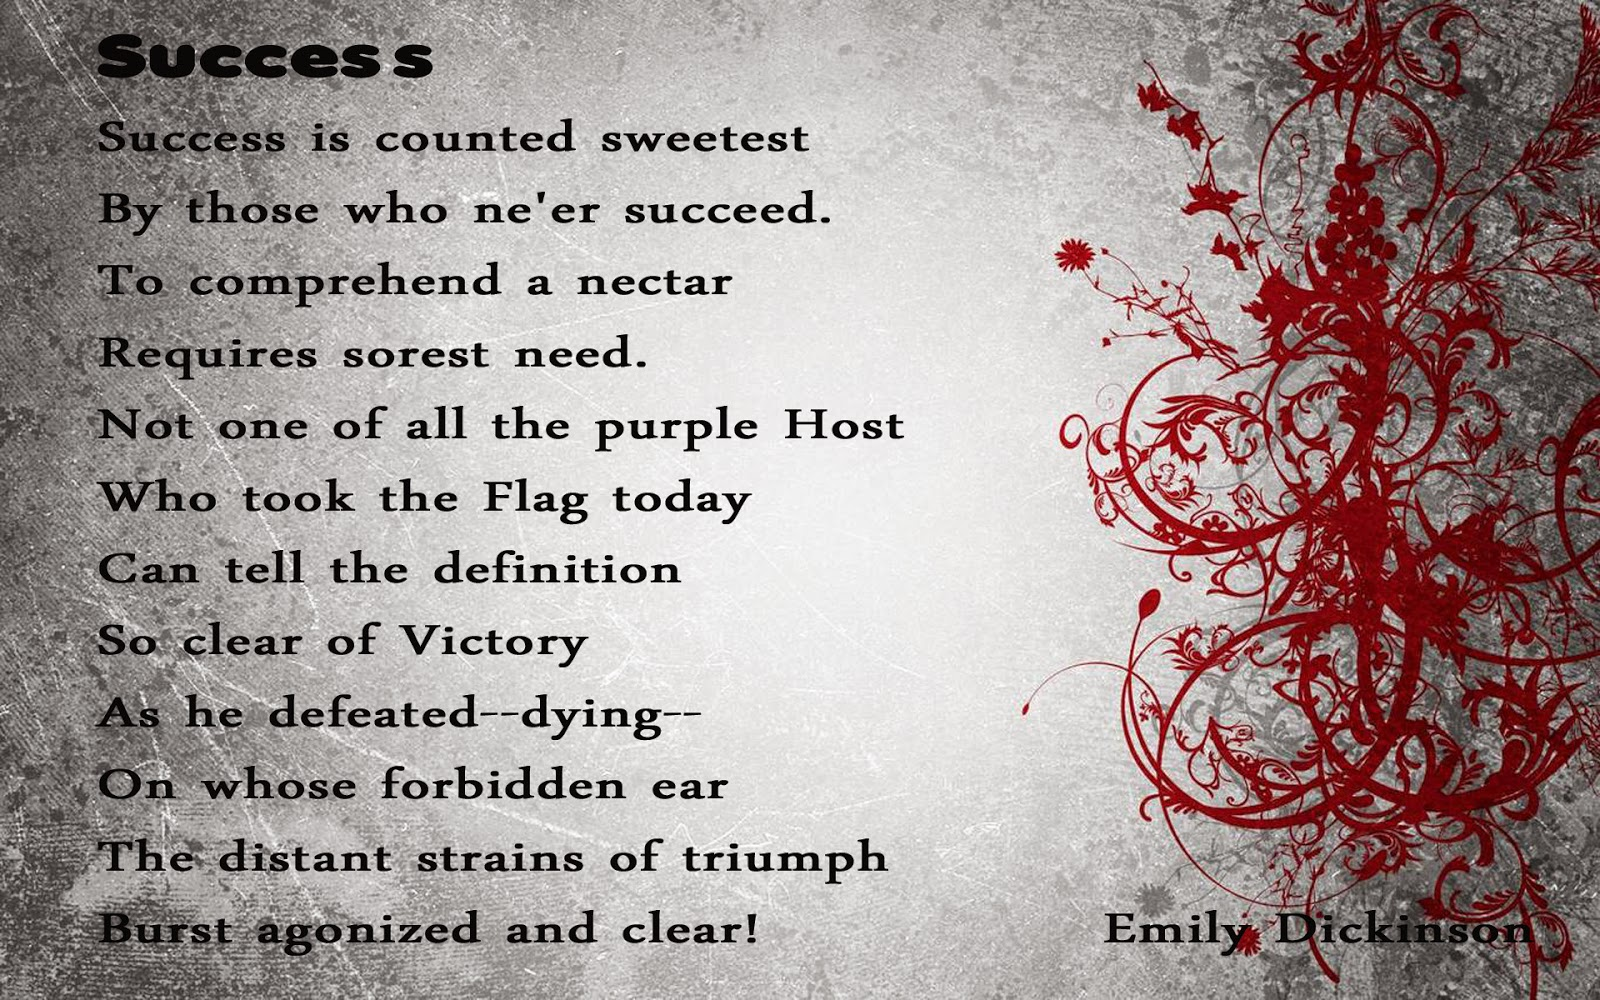 essay on poem by emily dickinson success is counted sweetest essay on poem by emily dickinson success is counted sweetest